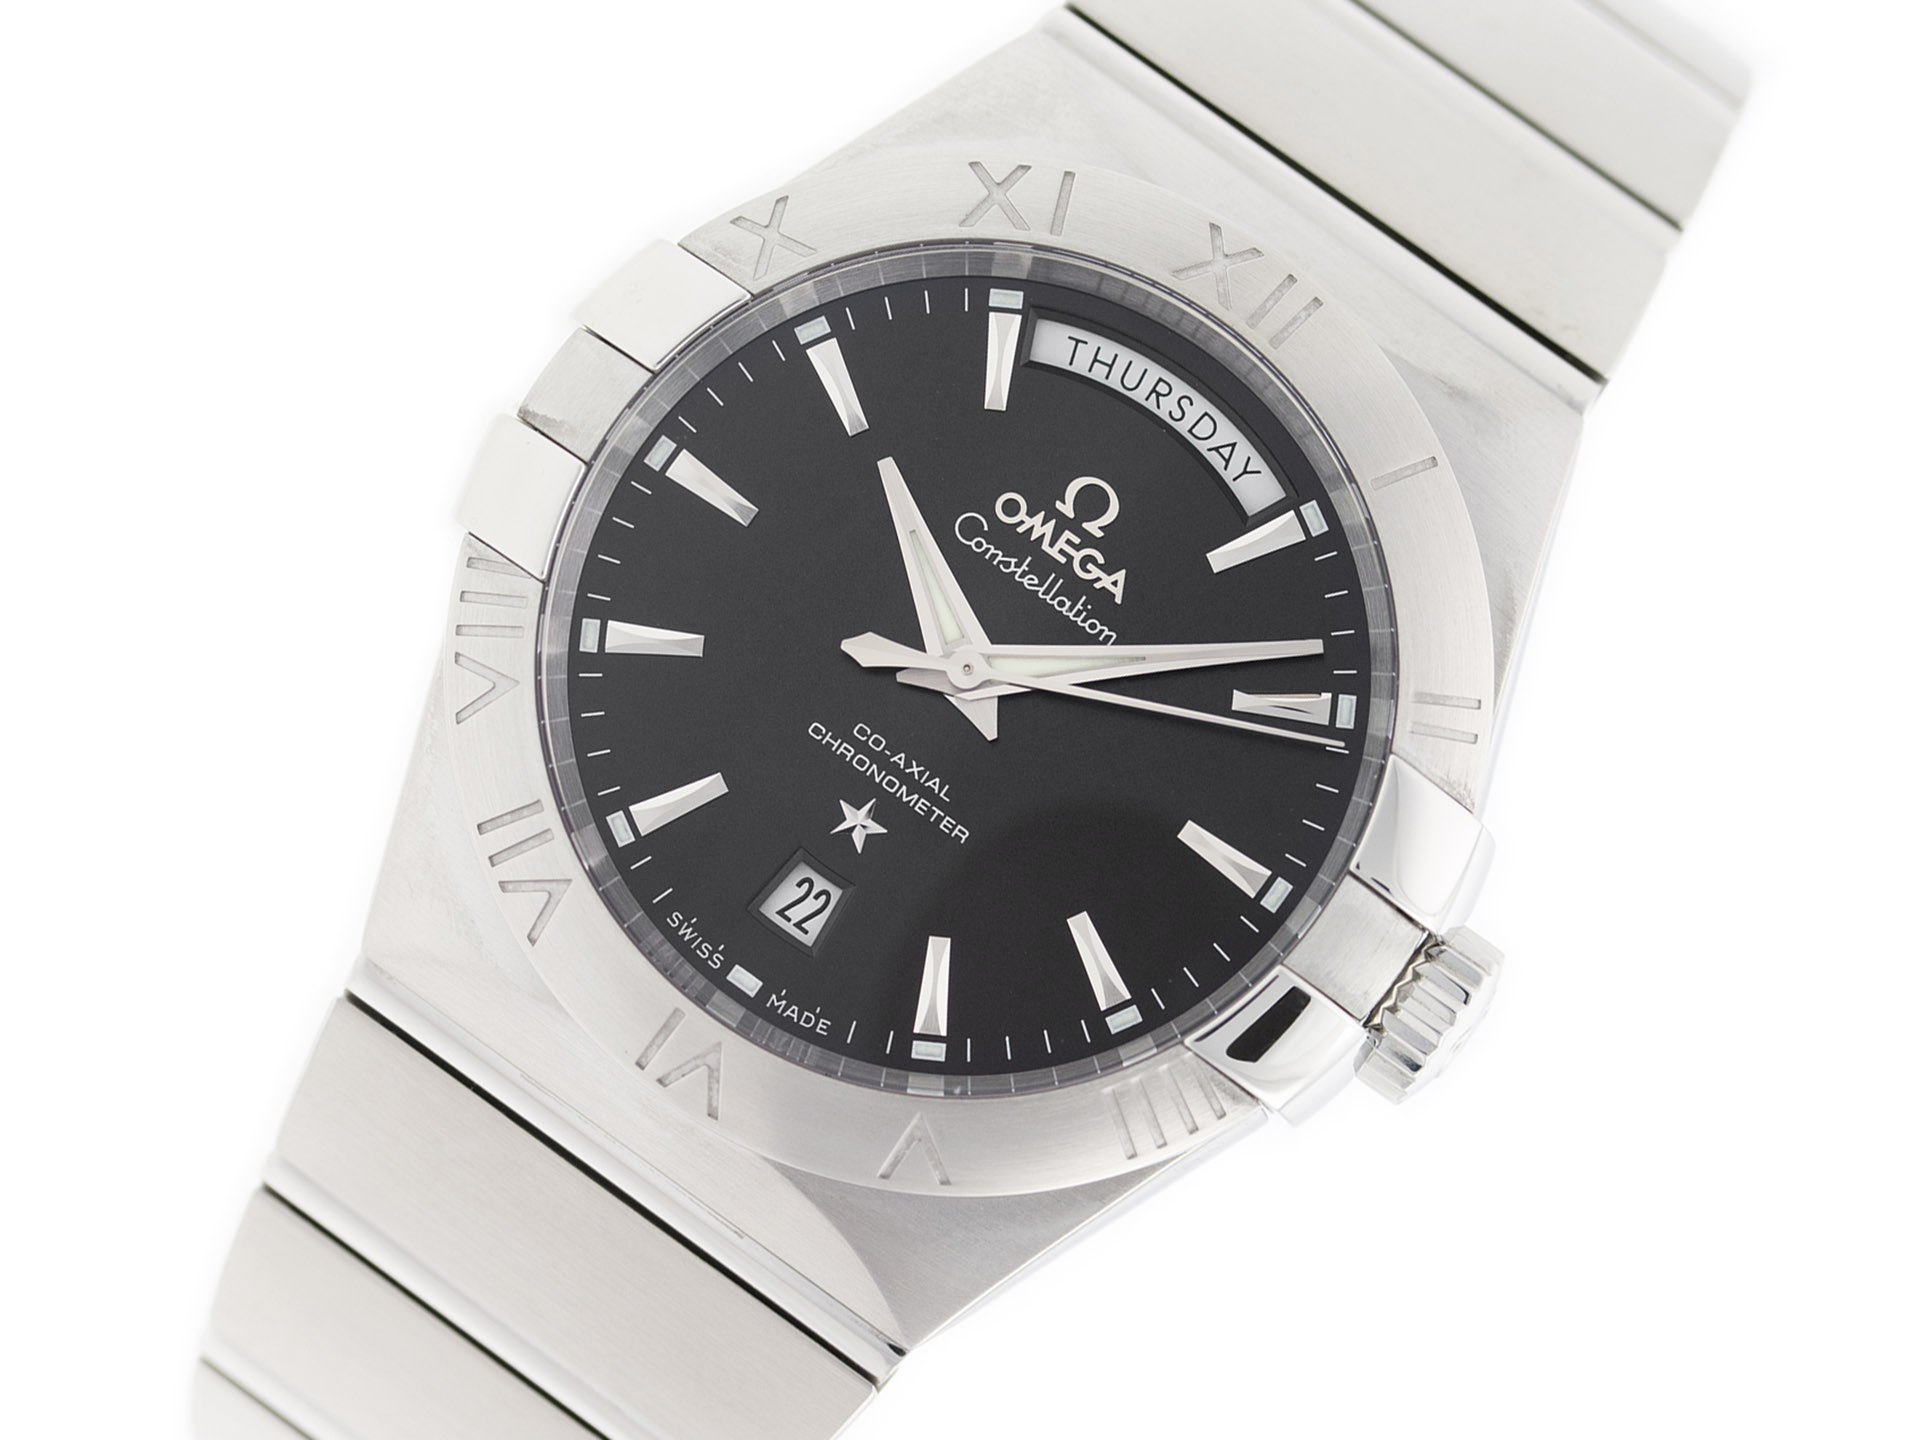 Omega constellation day date precision watches jewelryprecision watches for Omega watch constellation